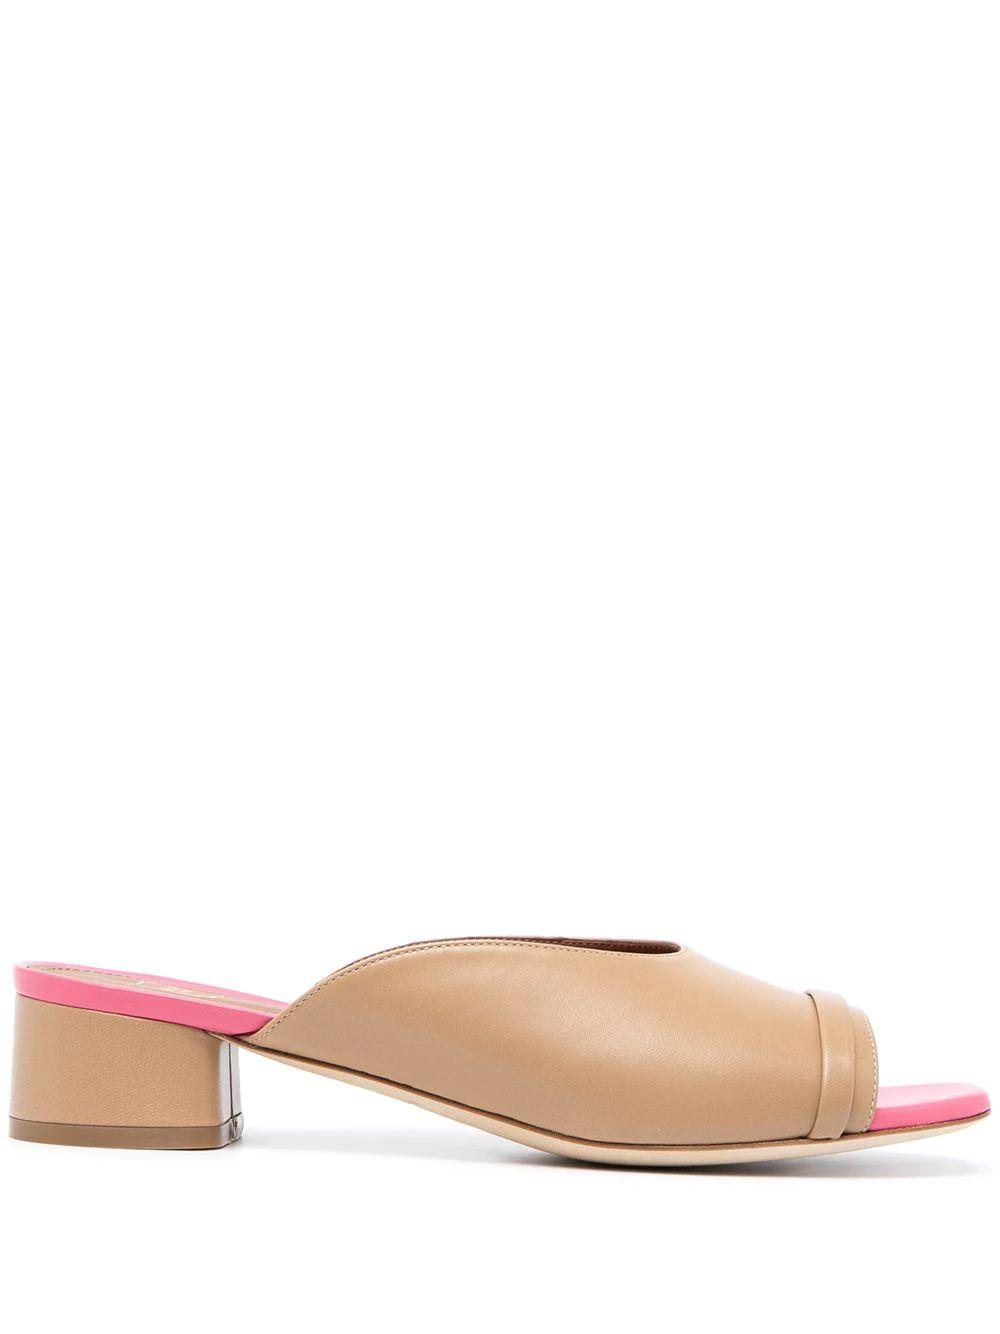 Sena Two-Tone Mules